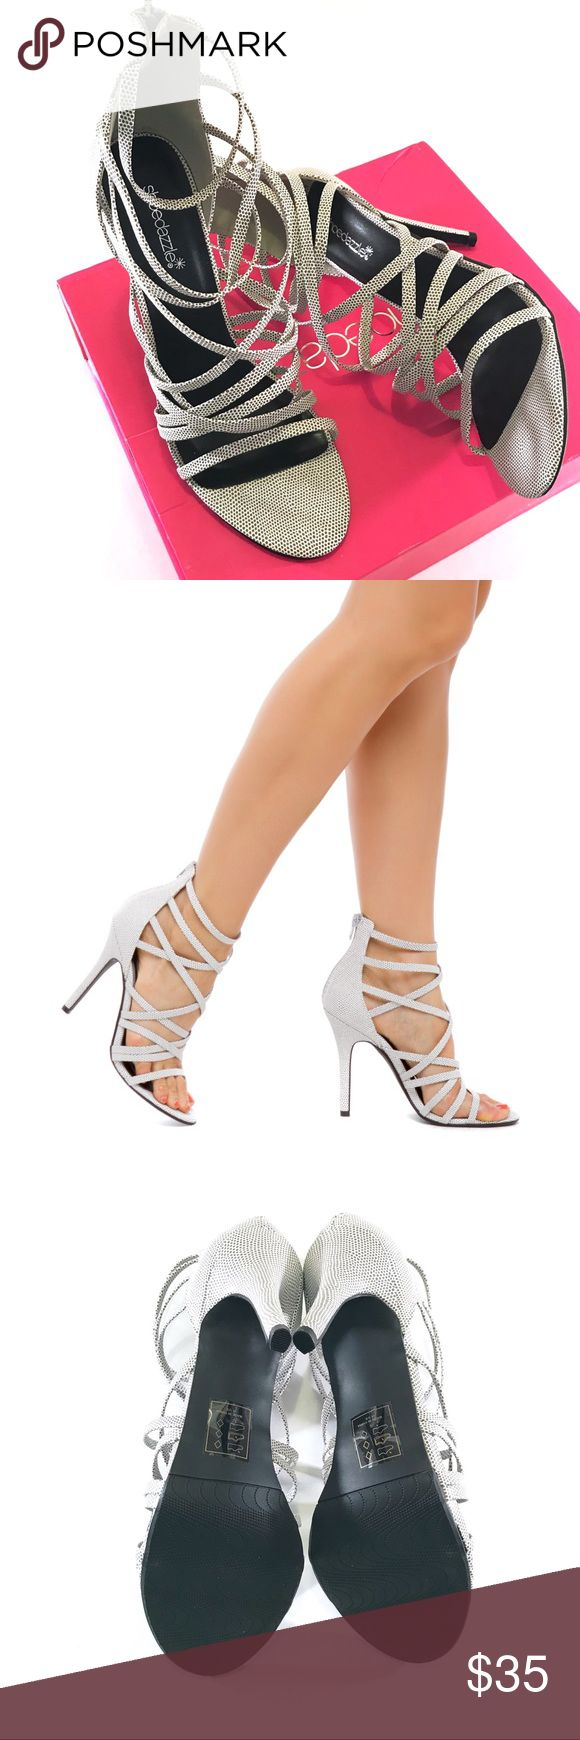 "NIB Shoe Dazzle Karely Strappy Heel Sandal 🔹Heel height: 4.5""  🔹Faux leather 🔹Back zipper 🔹Subtle grey & white pattern Shoe Dazzle Shoes Heels"